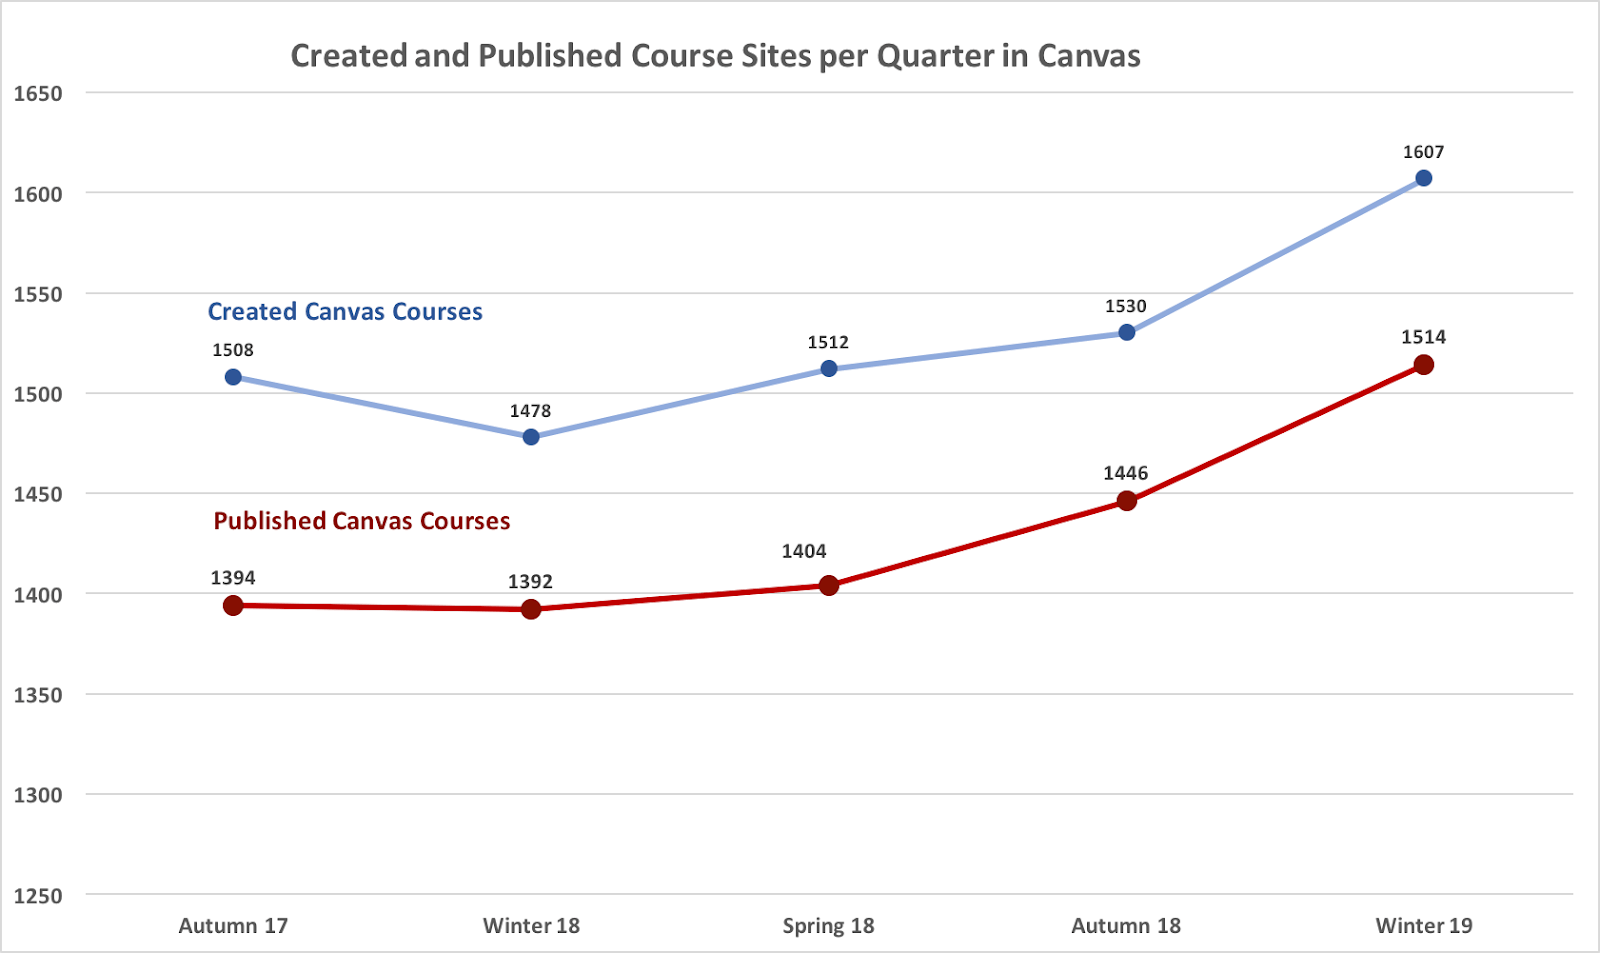 Line graph of created and published course sites per quarter in Canvas